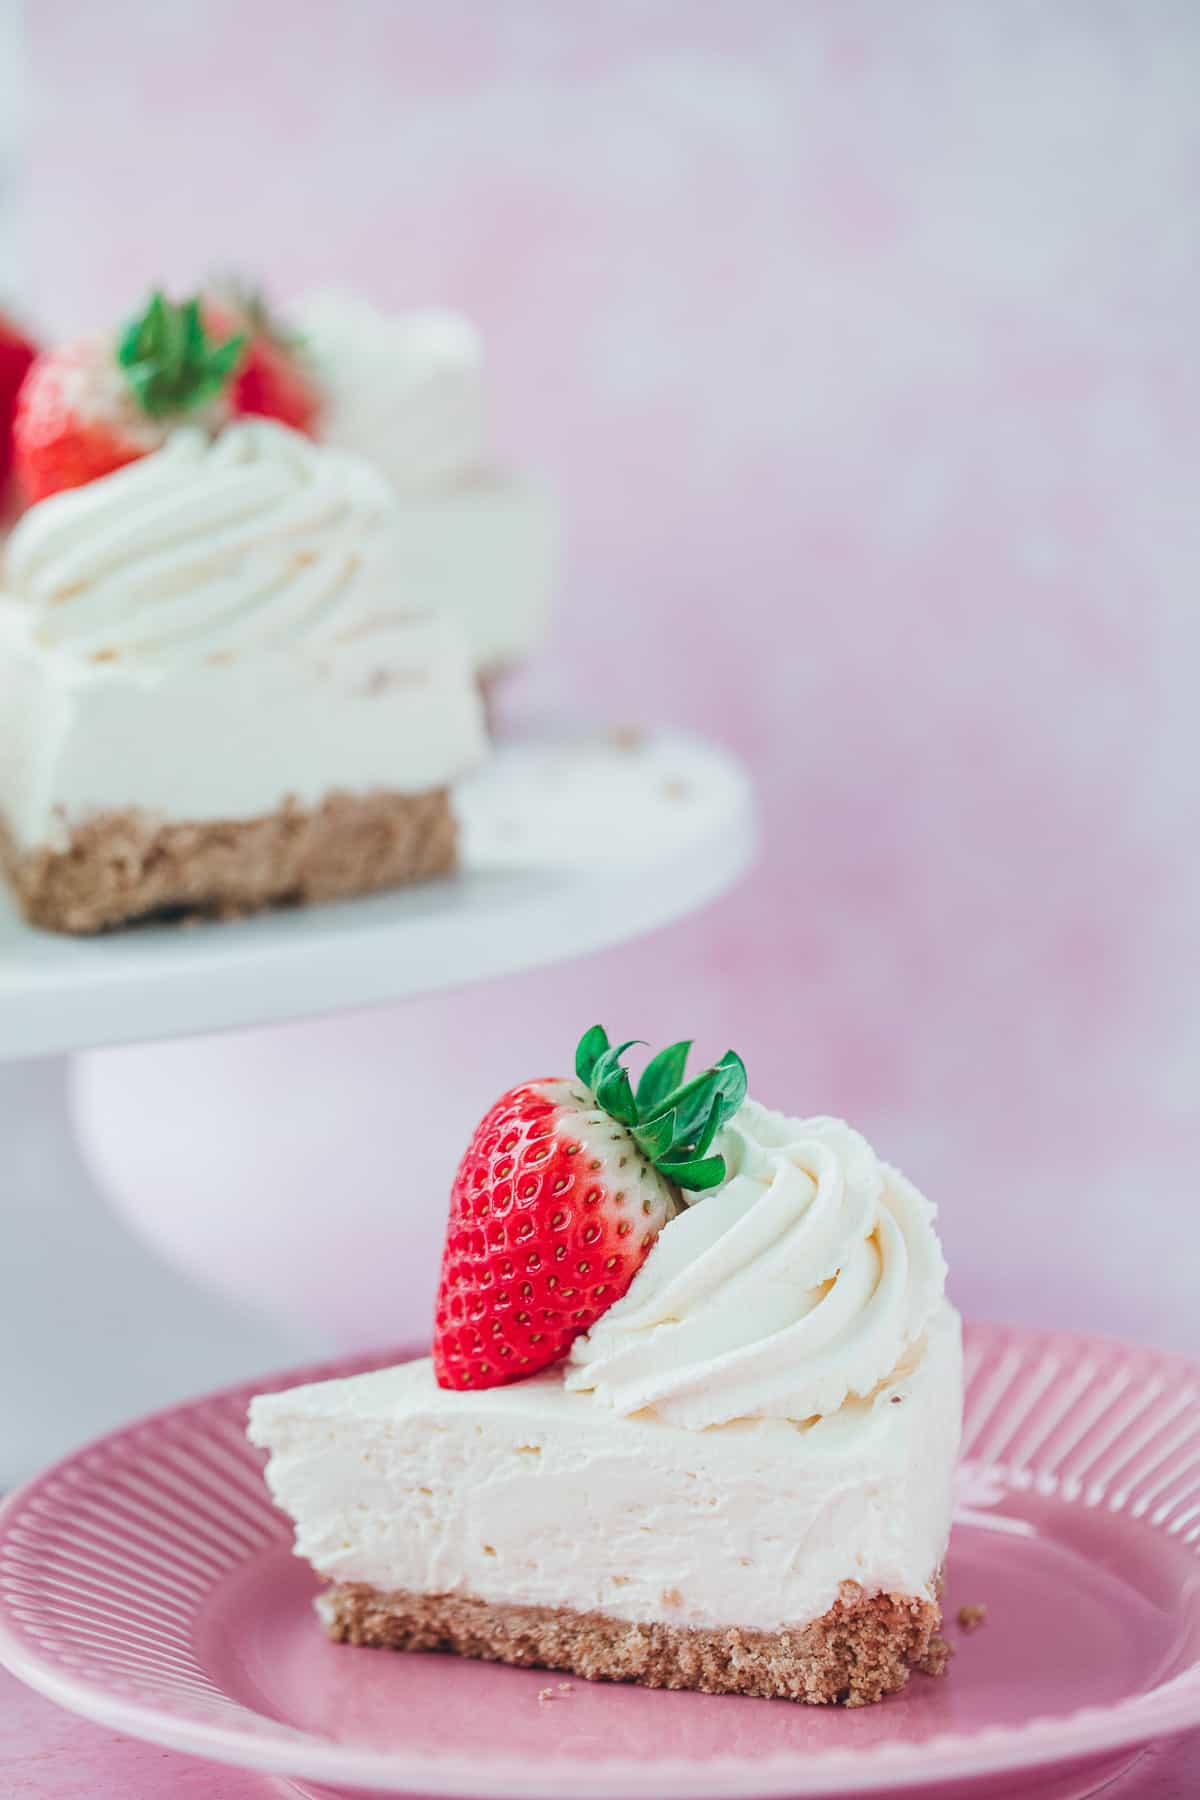 A slice of cheesecake with a cream swirl and strawberry for decoration.